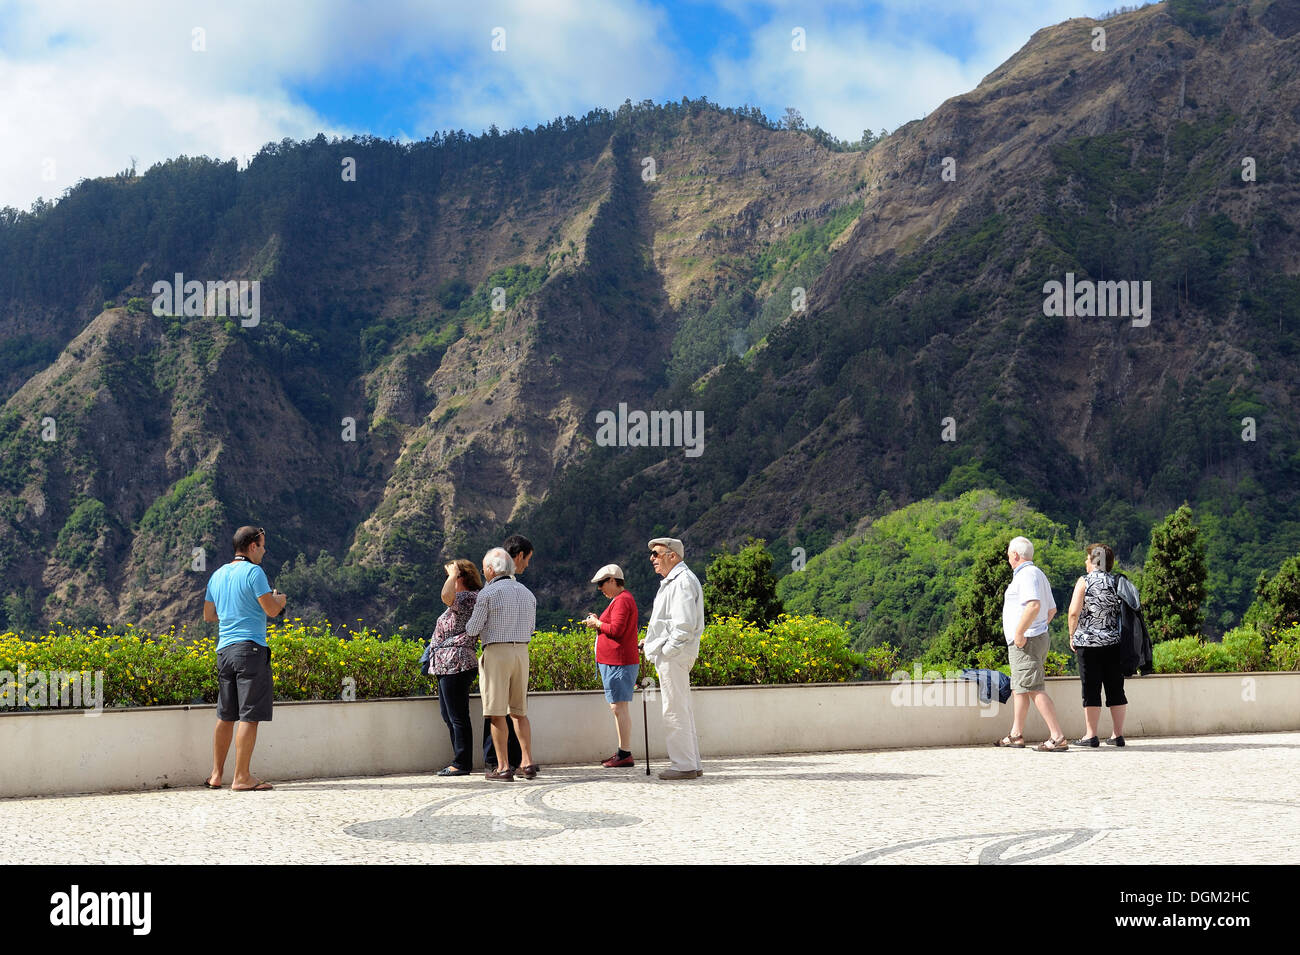 Curral das Freiras Madeira. Tourists viewing the mountain scenery also known as Nuns valley - Stock Image